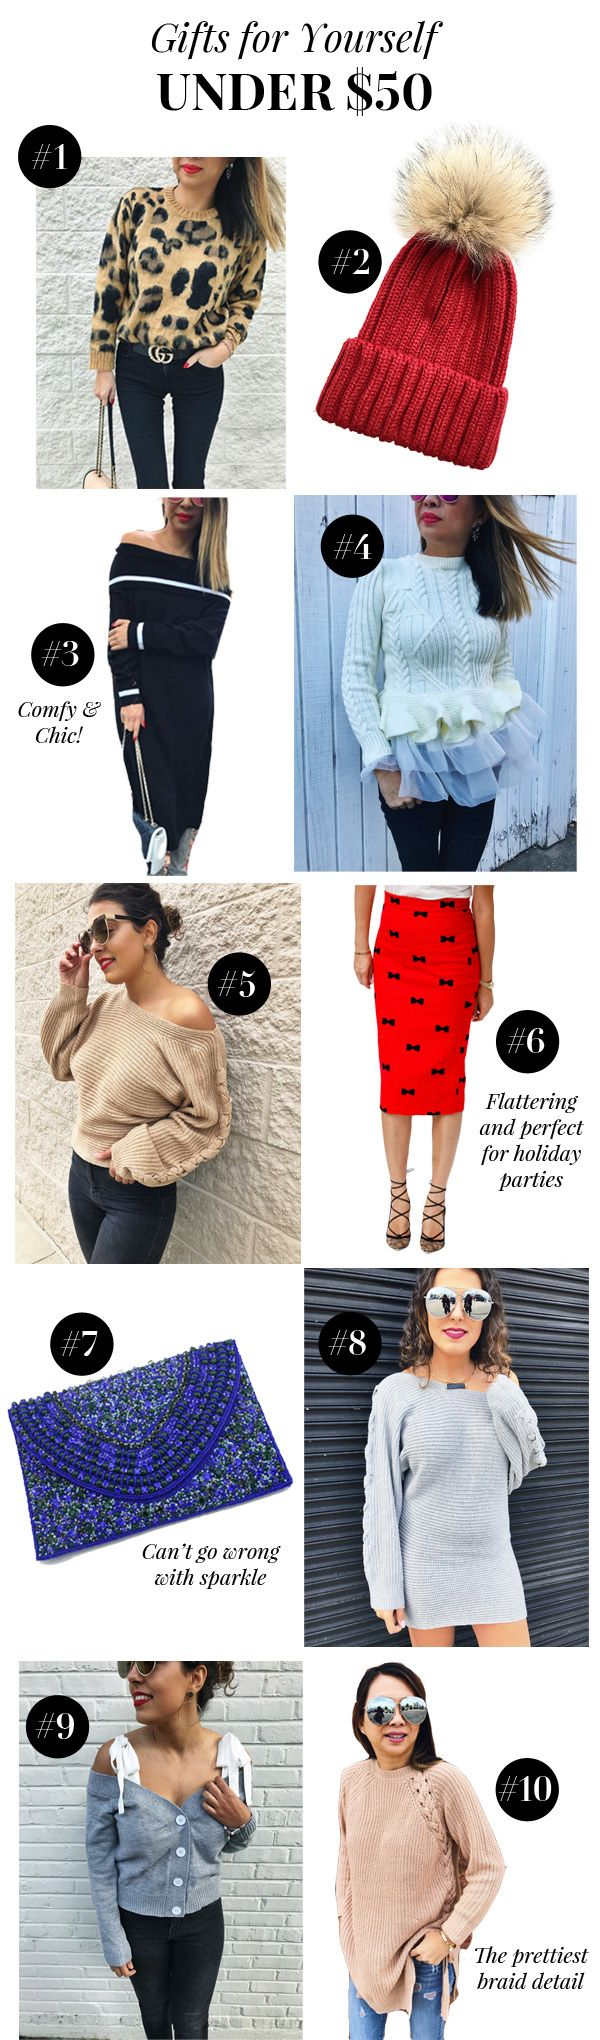 gift guides, christmas gift guides, gift guide under $50, gifts under $50, fashion blogger, gift guides for women, gift guides for sister, gift guide for mom, jewelry gift guide, what to buy her for christmas, what to buy my sister for christmas, what to buy my mom for christmas, blog gift guides, gift guides 2017, gift guide for me, gift guide for myself, sweaters, sweater weather, pretty sweaters, how to style a sweater, sweater gifts, christmas gift guide for me, christmas gift guide 2017